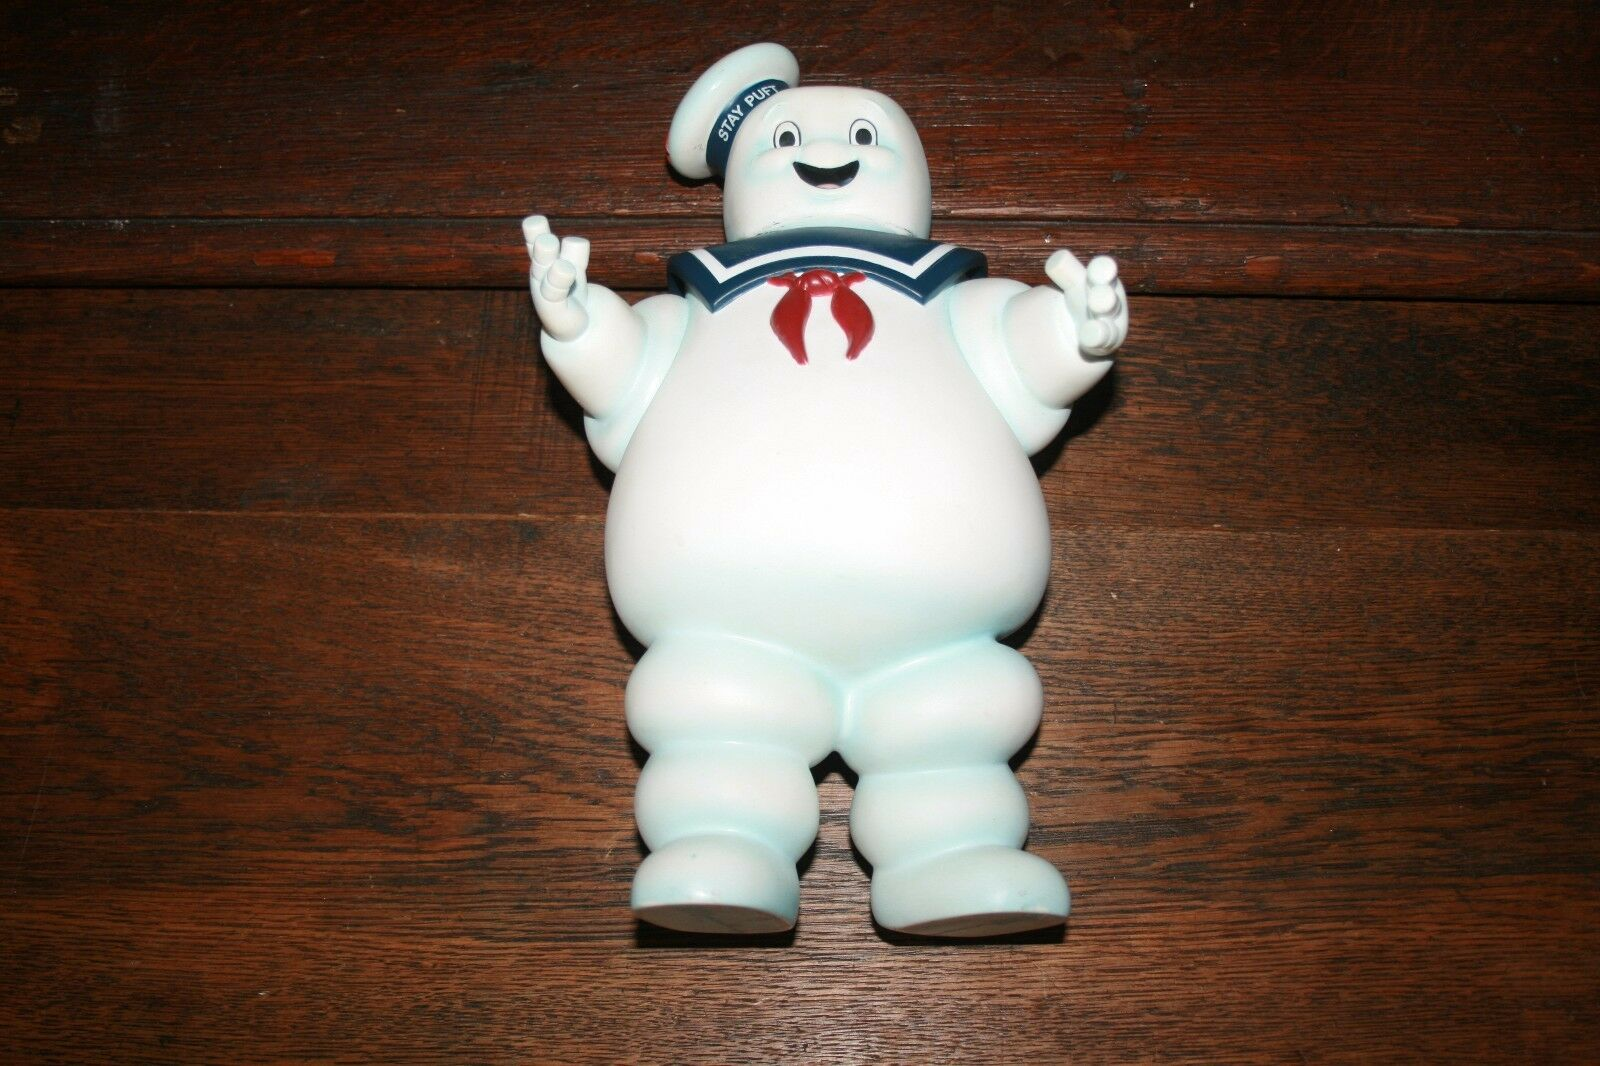 STAY PUFT TIRELIRE 091027LY GHOSTBUSERS TM&C 2009 COLUMBIA PICTURES INC